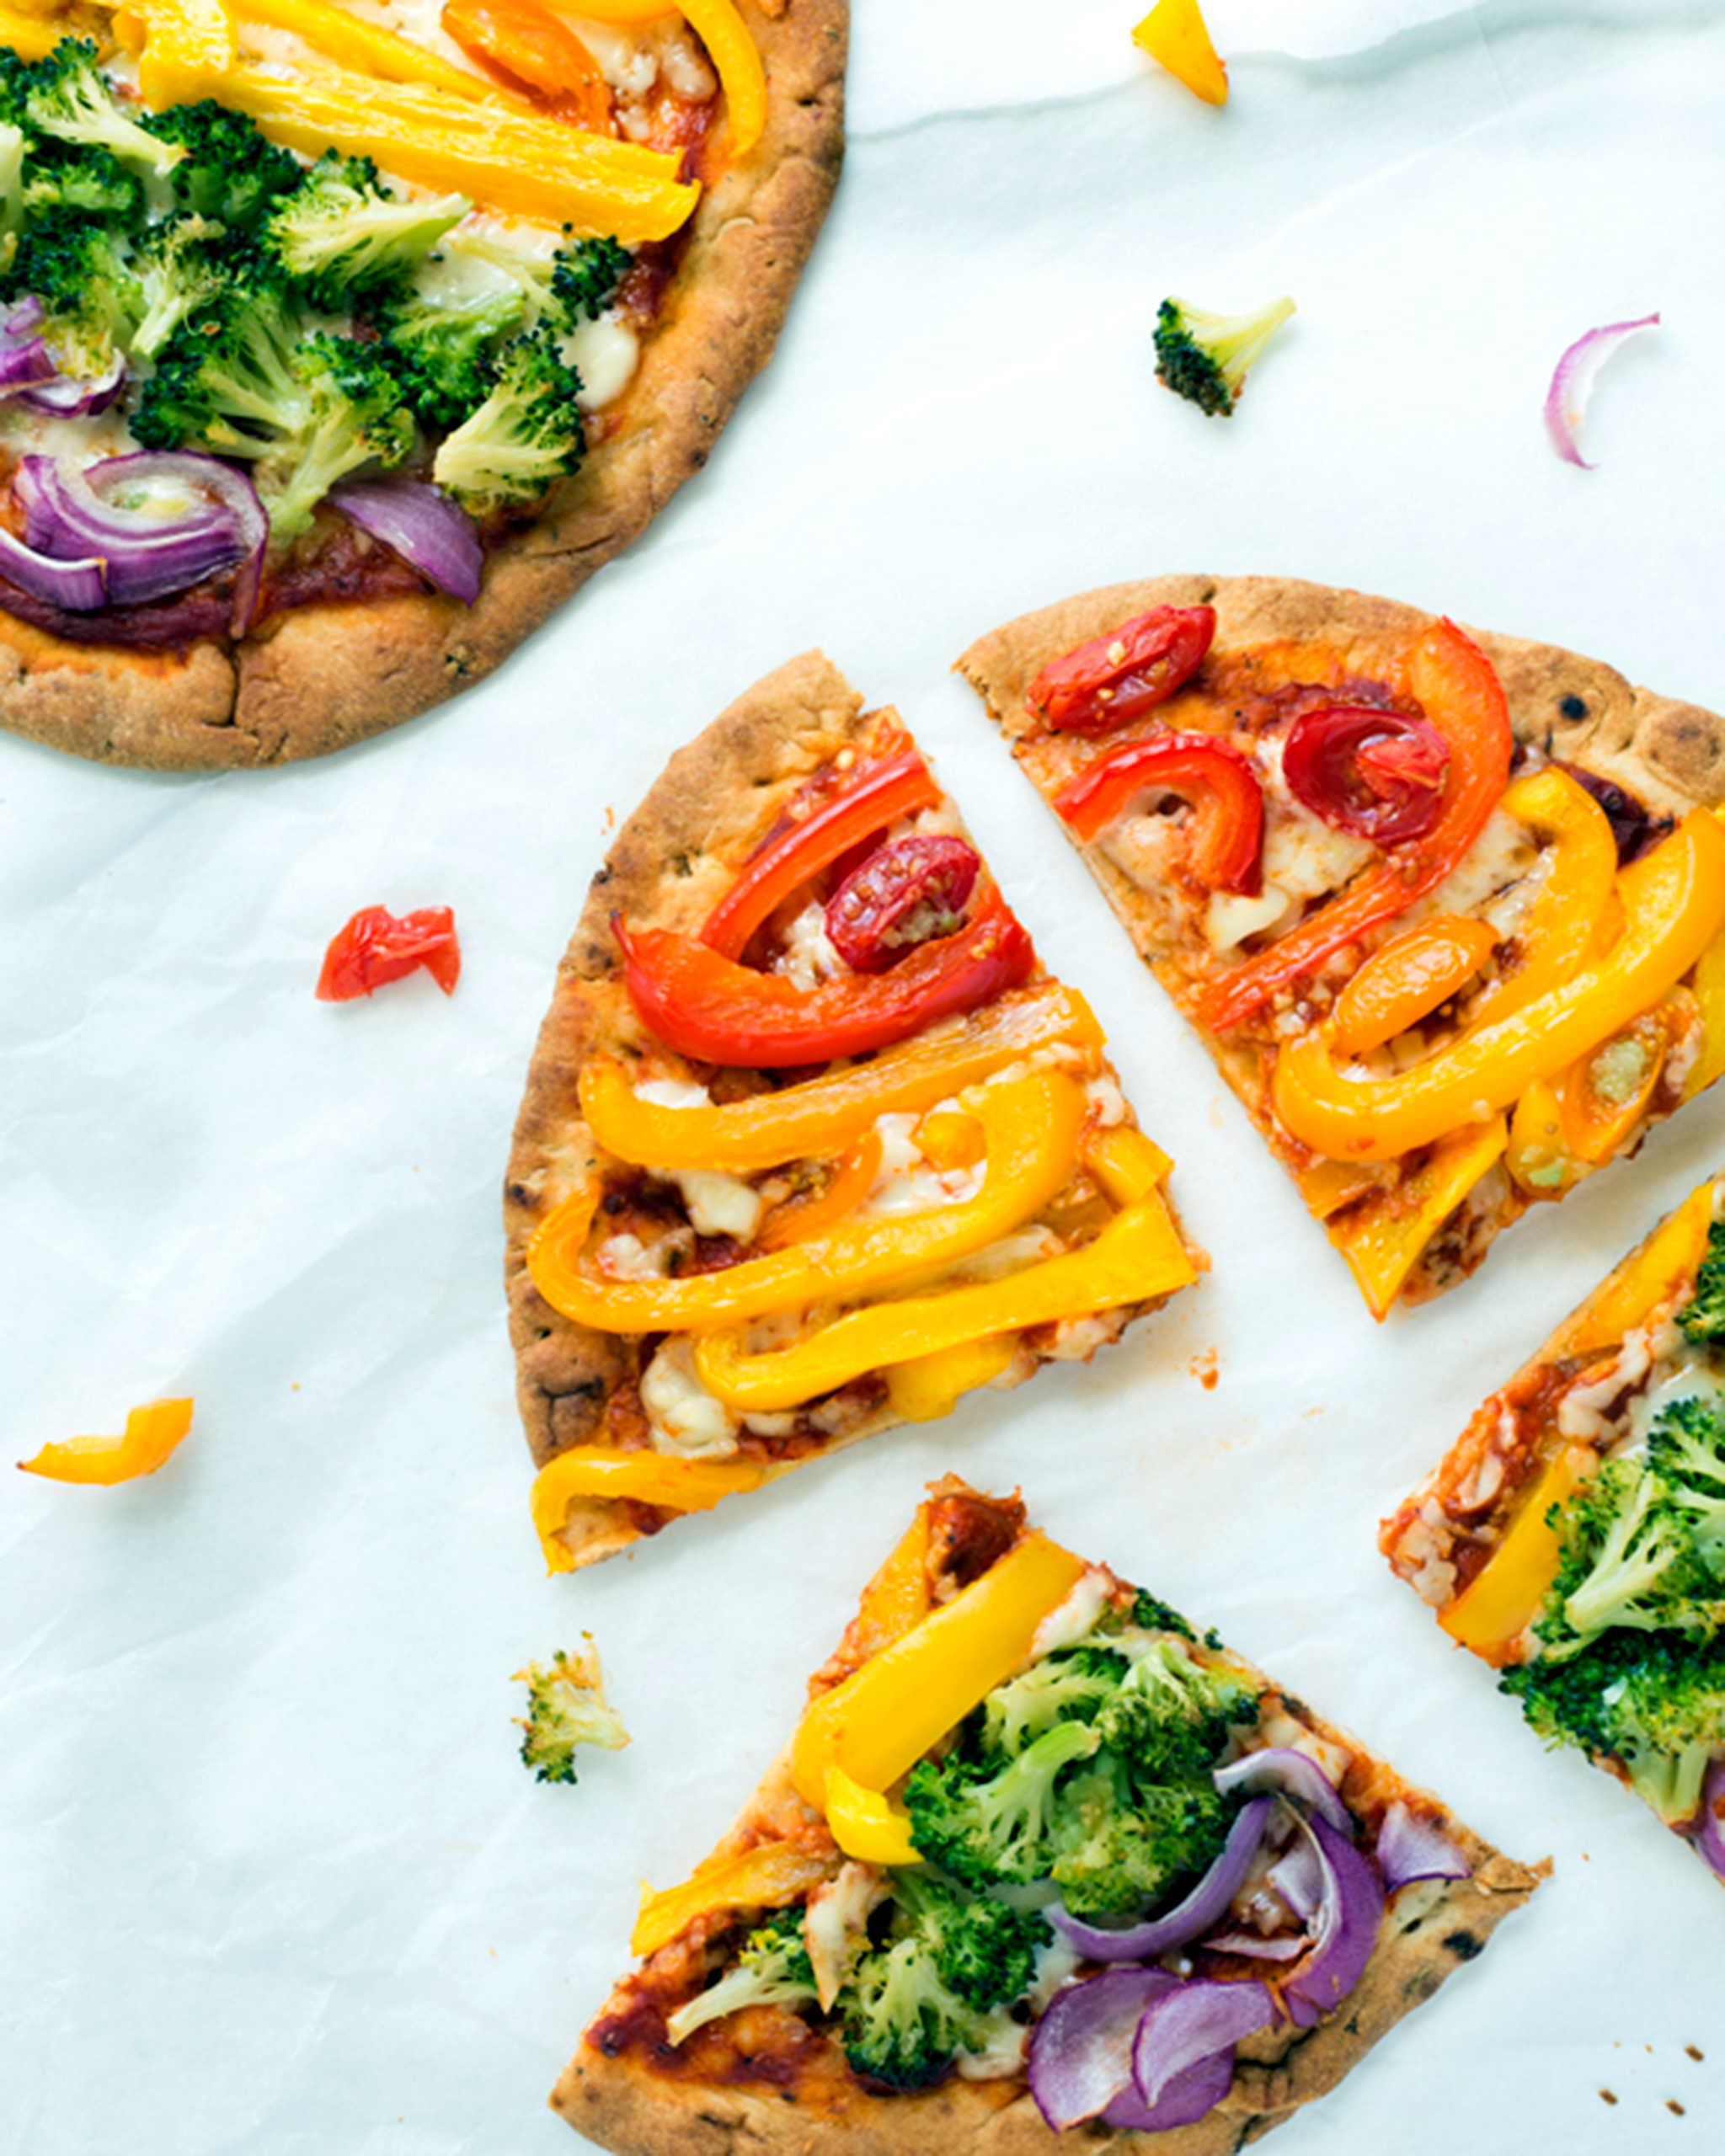 A photo of rainbow flatbread pizza topped with green and yellow peppers